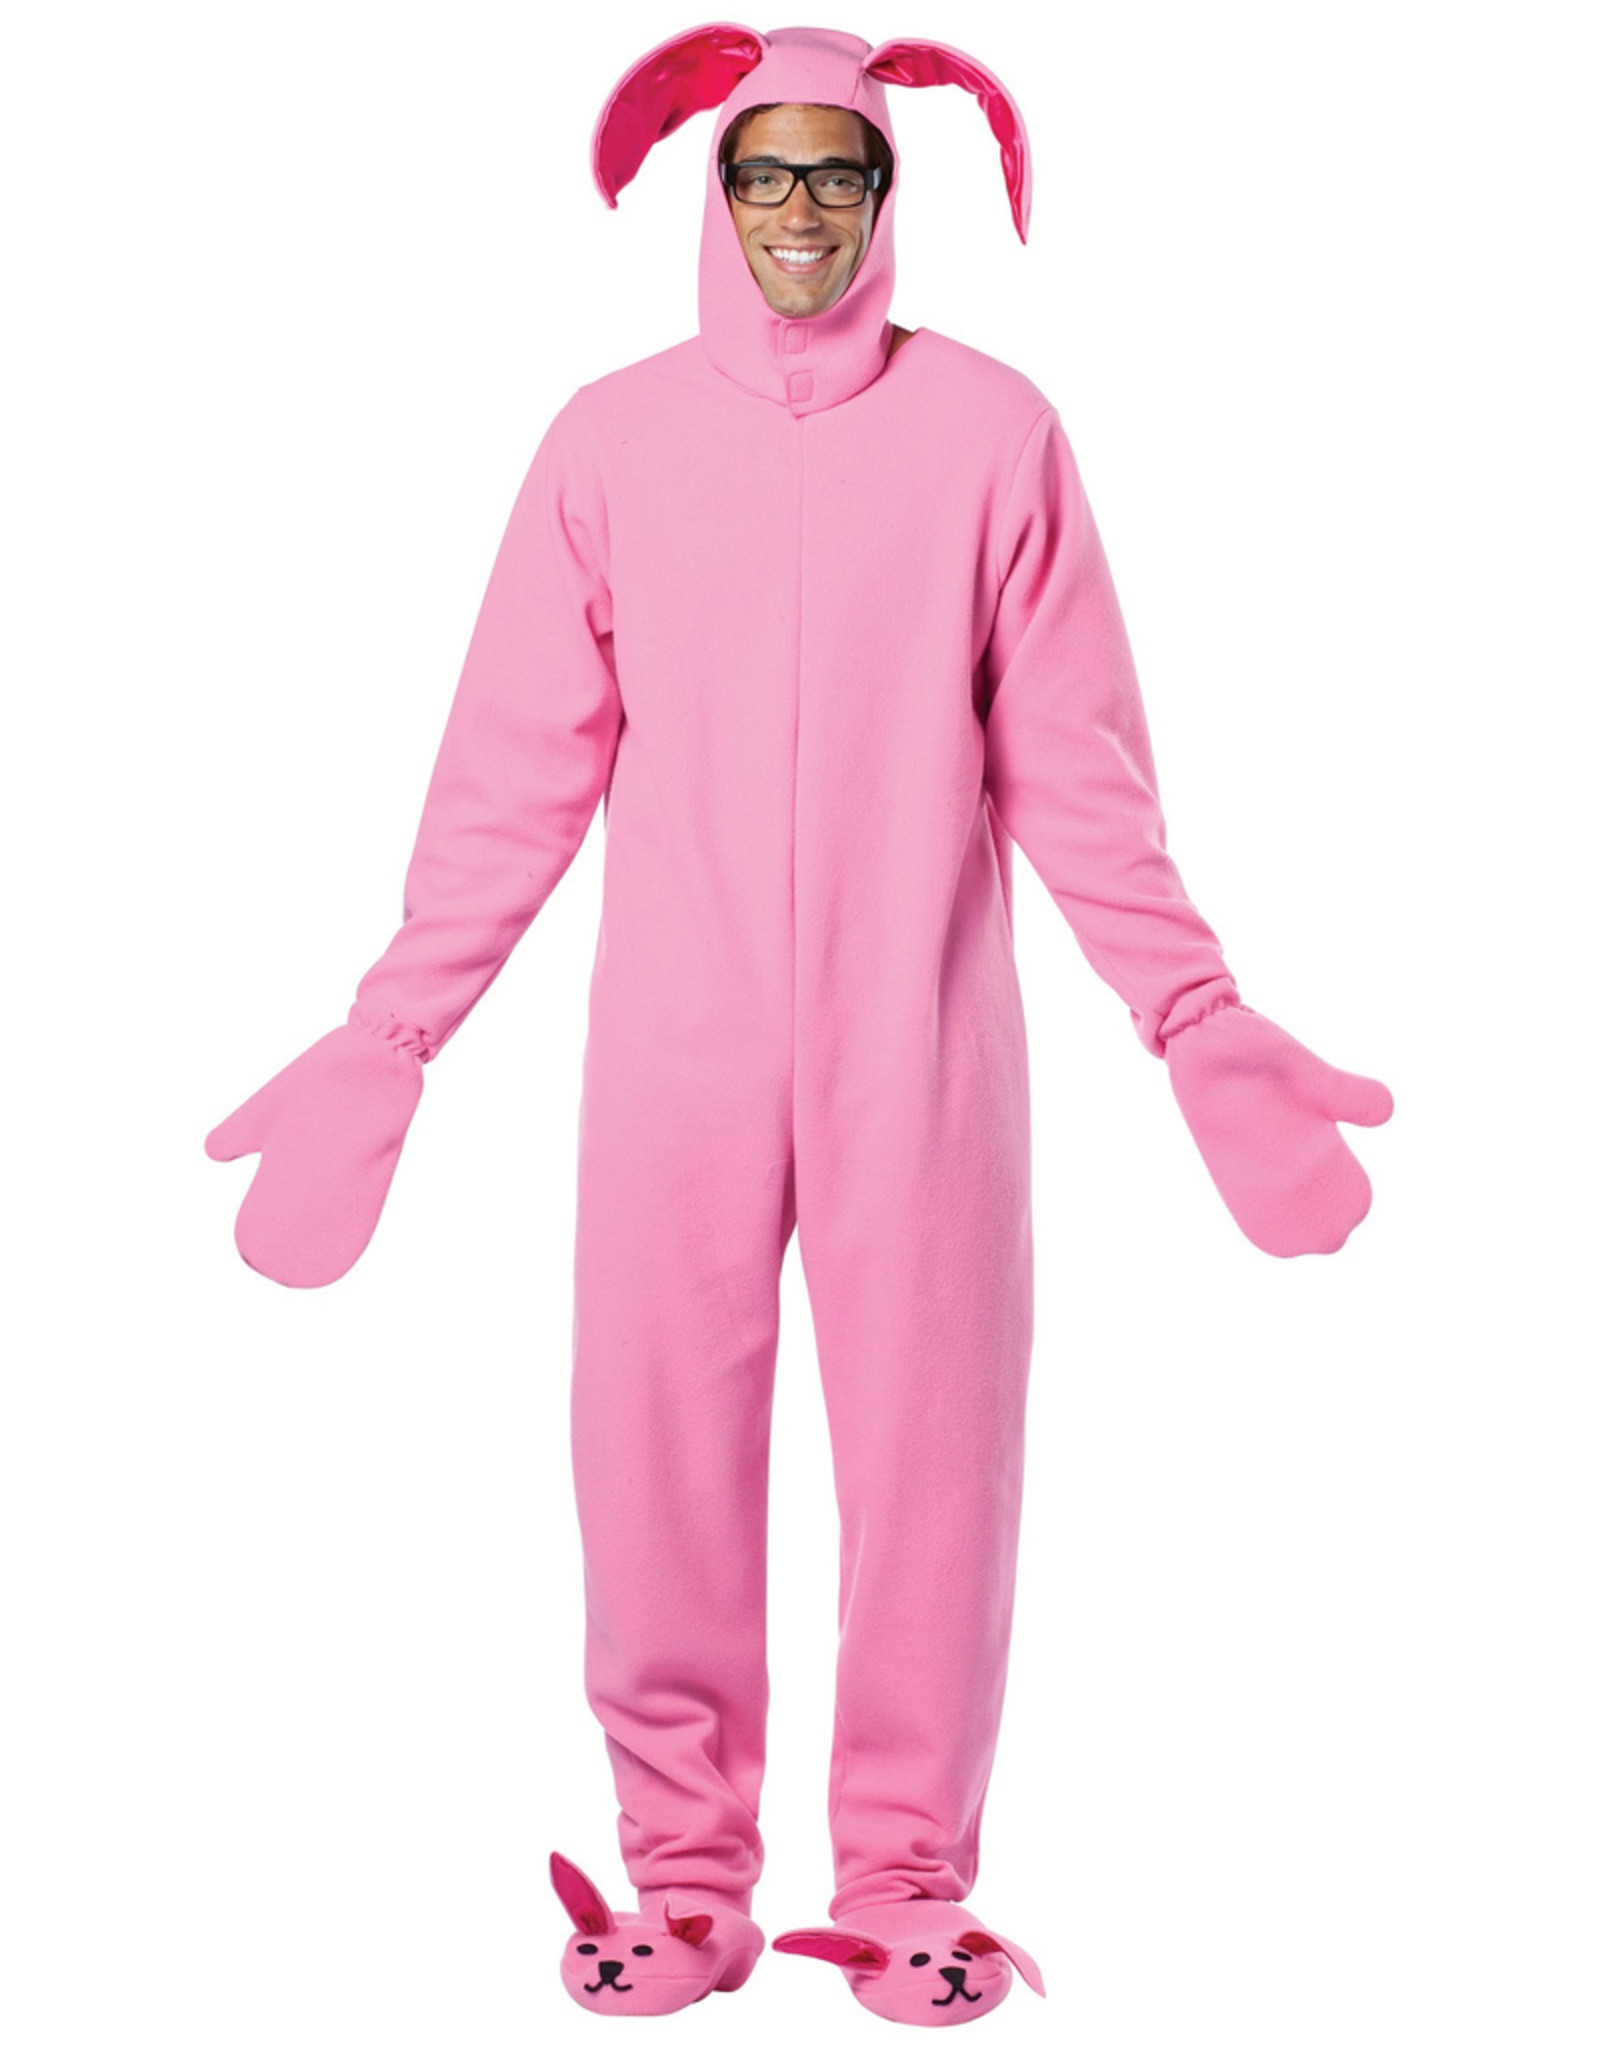 RASTA IMPOSTA PRODUCTS A Christmas Story Bunny Suit - Men's